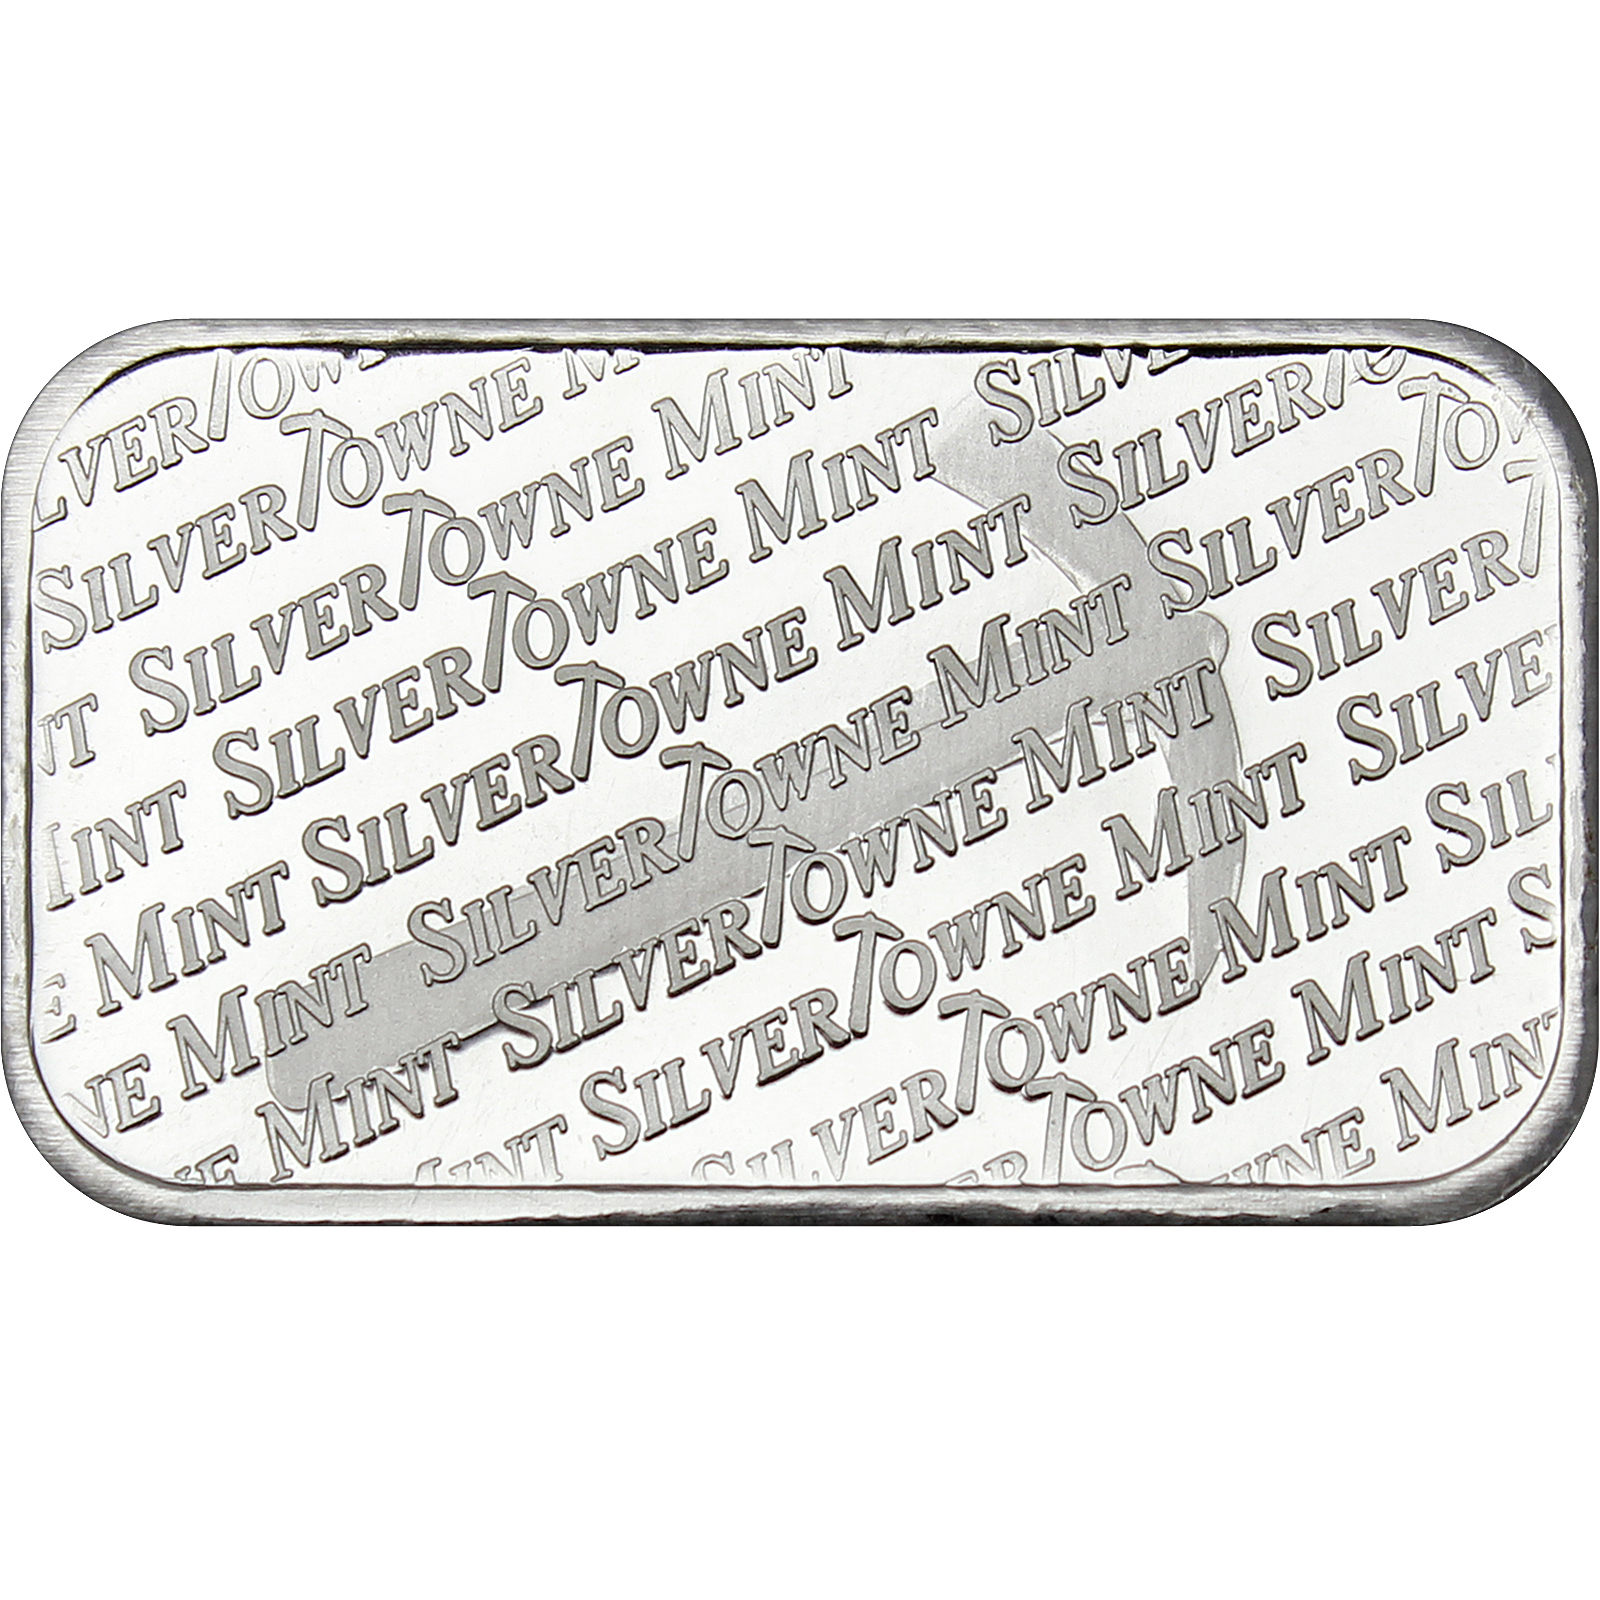 Silvertowne Mint Signature 1oz 999 Fine Silver Bar Lot Of